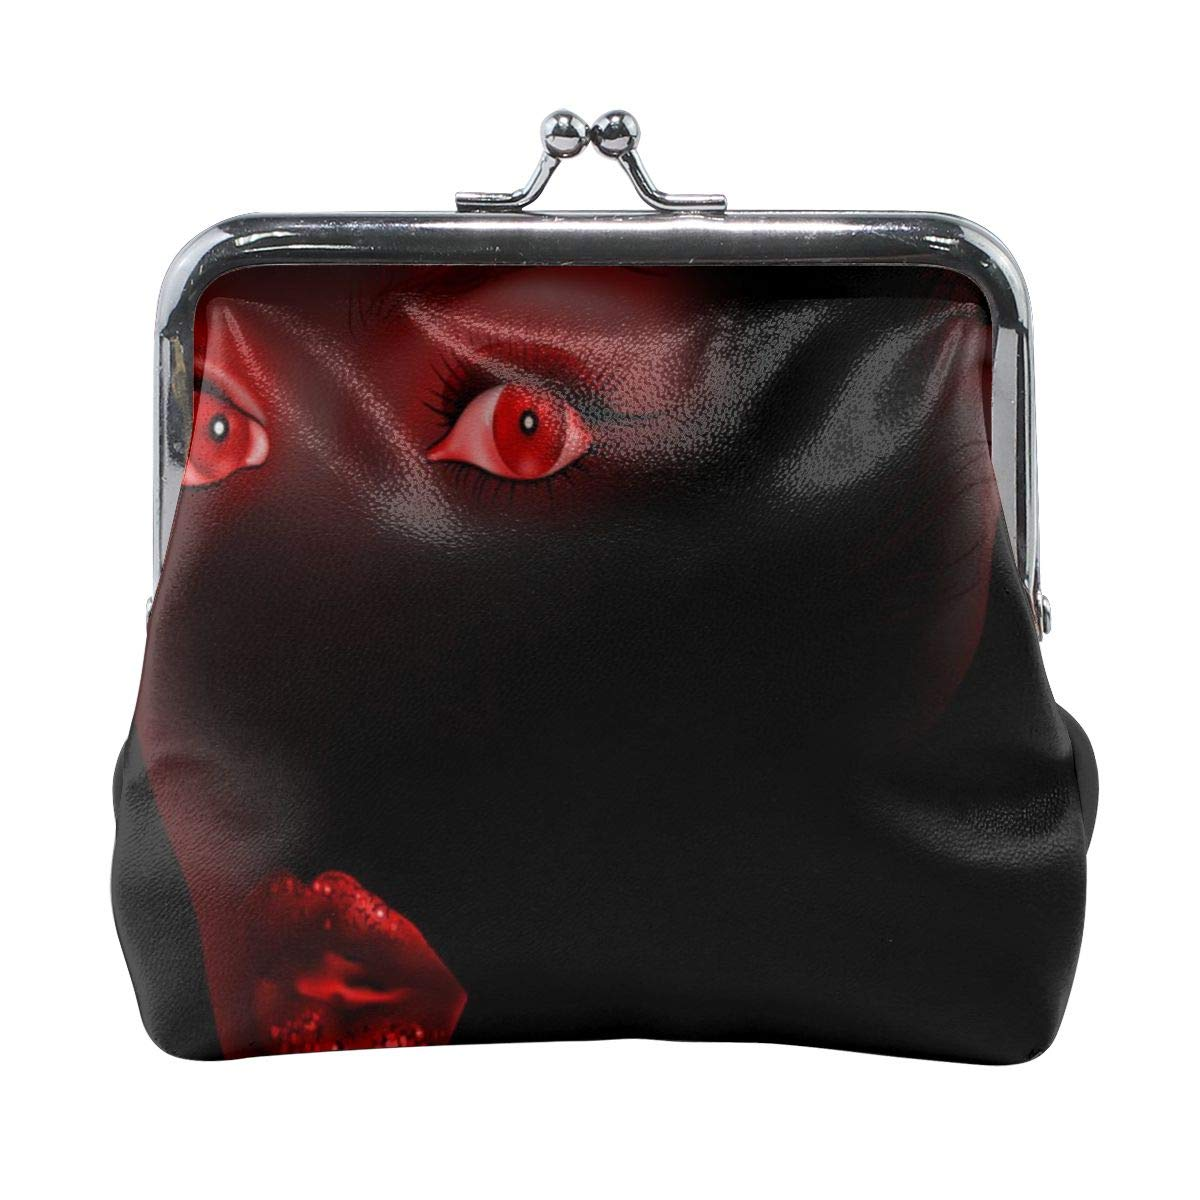 Yunshm Eyes In The Dark Customized Leather Classic Floral Coin Purse Clutch Pouch Wallet For Womens